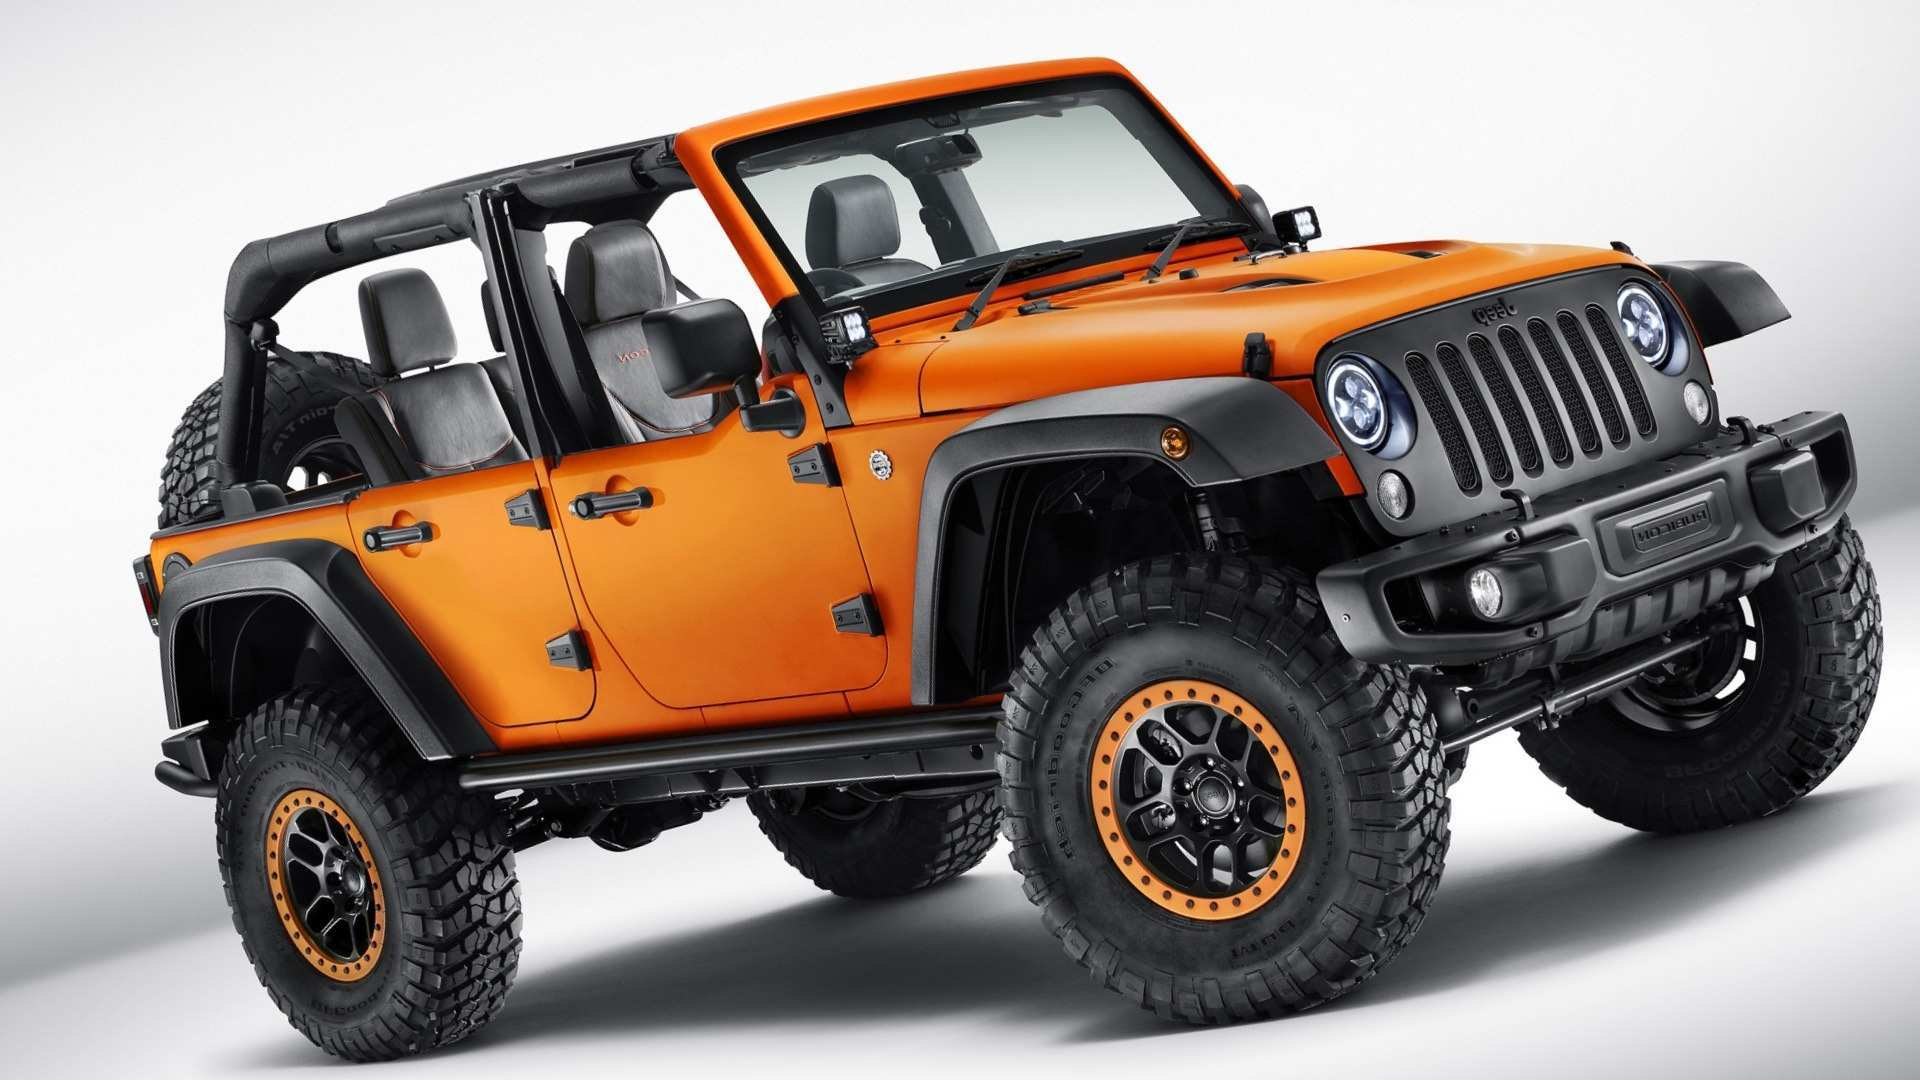 34 The Best 2020 Jeep Wrangler Unlimited Rubicon Colors Overview